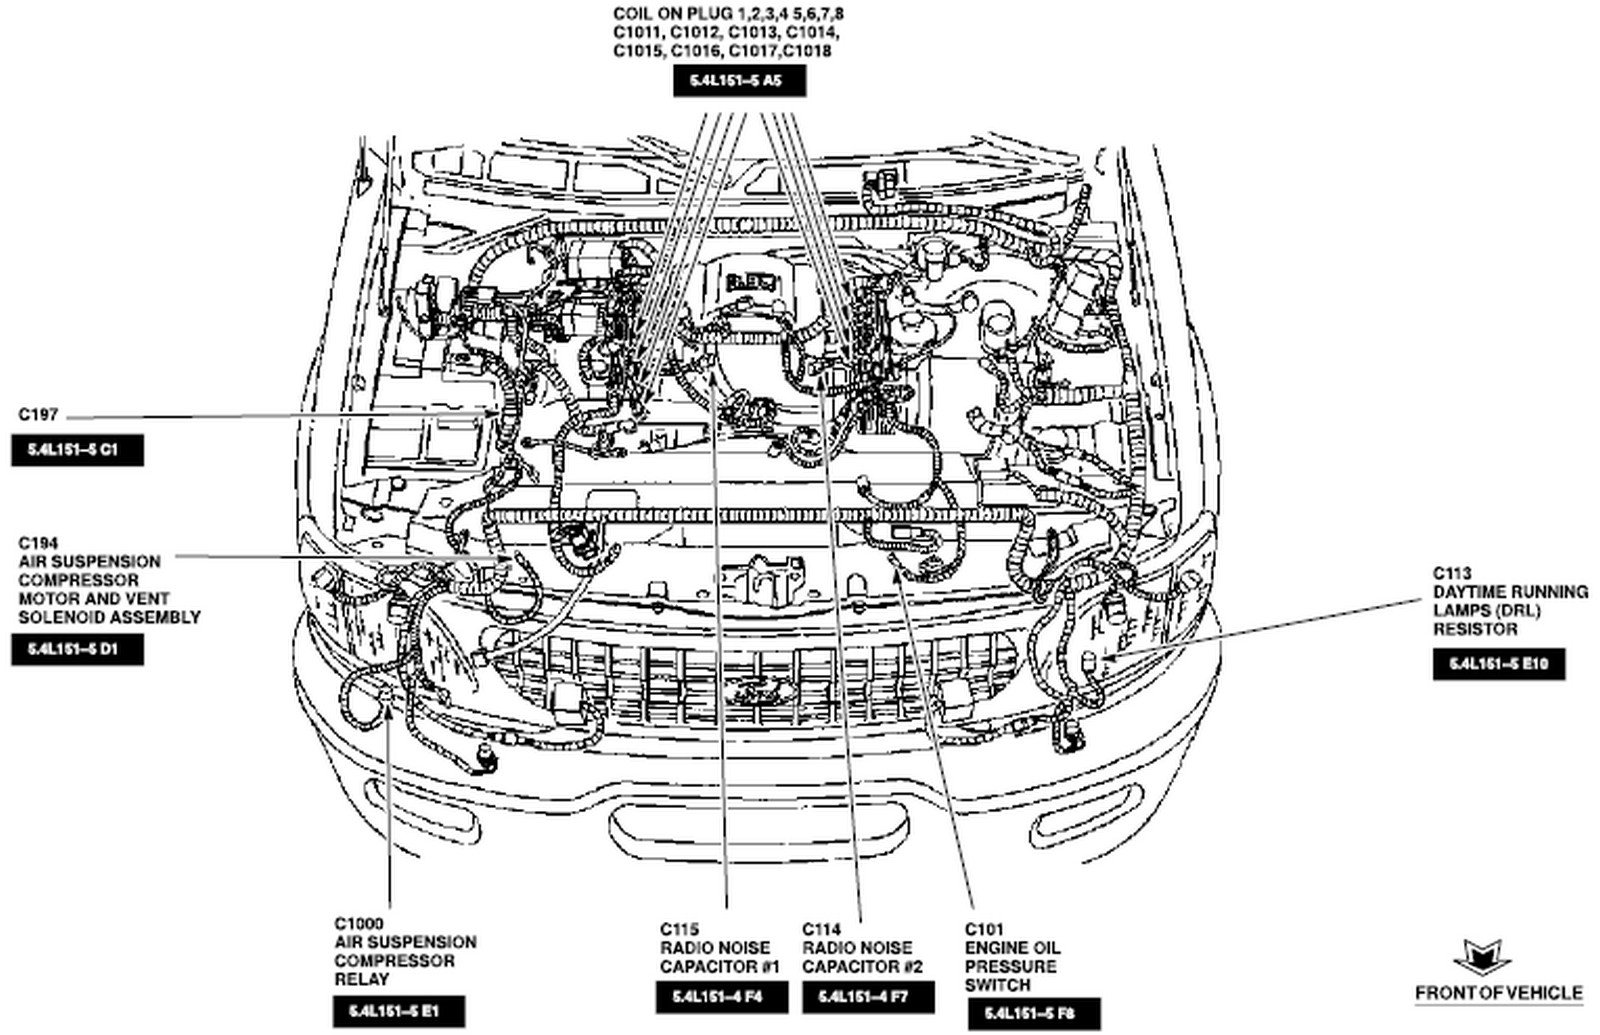 2010 03 31_235513_01_Navigator_engine_compartment compressor for the back suspension in a 2001 lincoln navigator? 2001 lincoln navigator engine diagram at bayanpartner.co